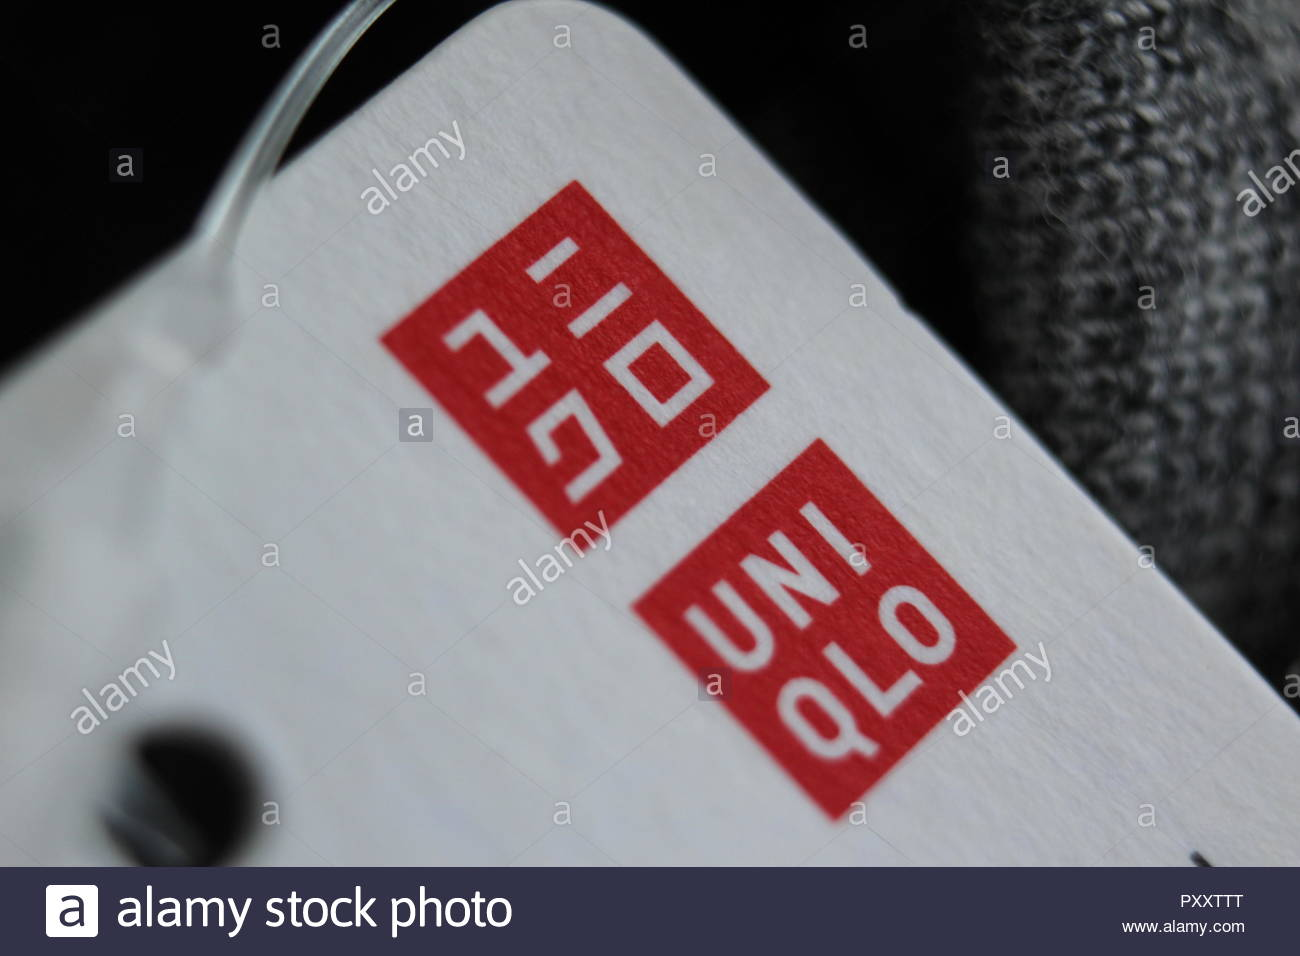 detail-of-label-with-logo-on-clothes-by-japanese-retailer-uniqlo-PXXTTT.jpeg